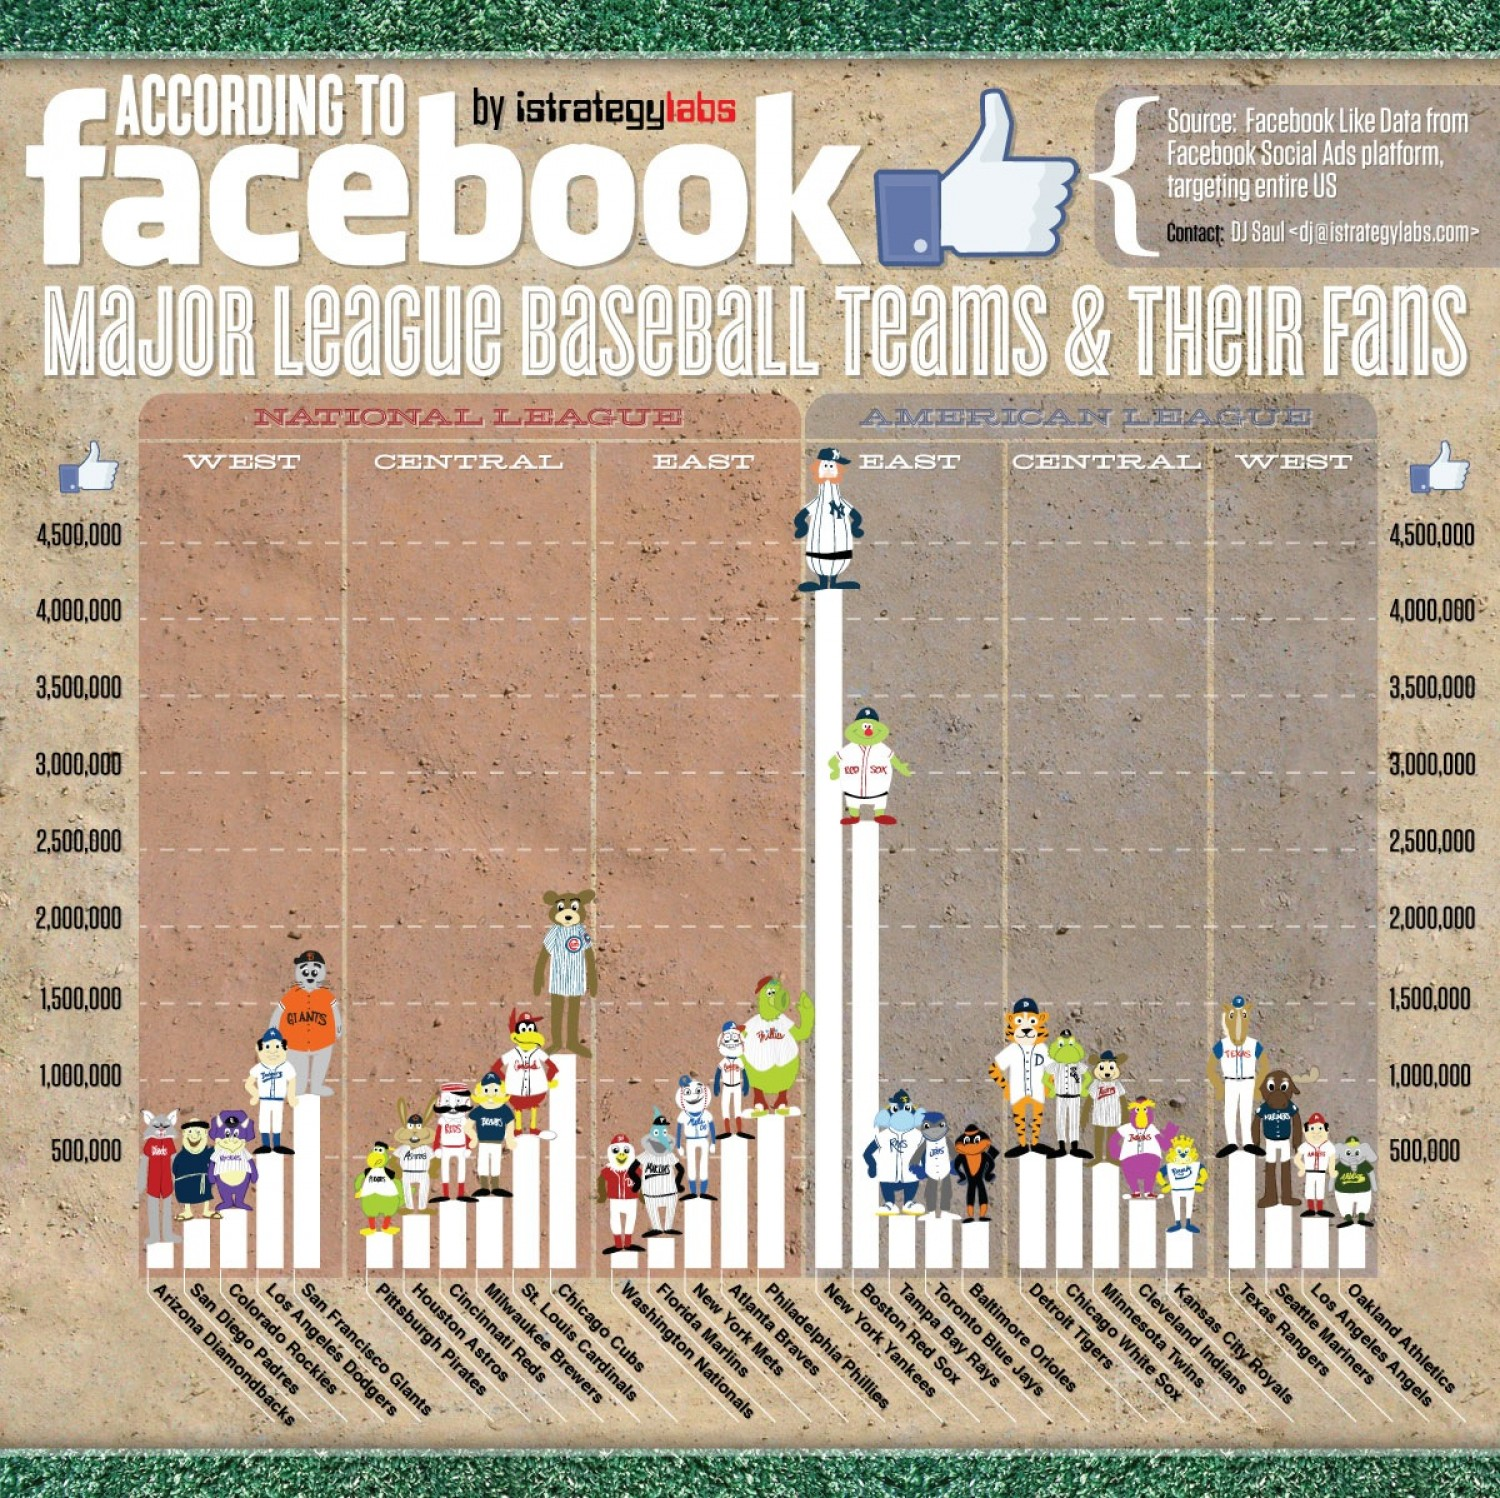 mlb-baseball-teams--fans-accroding-to-facebook